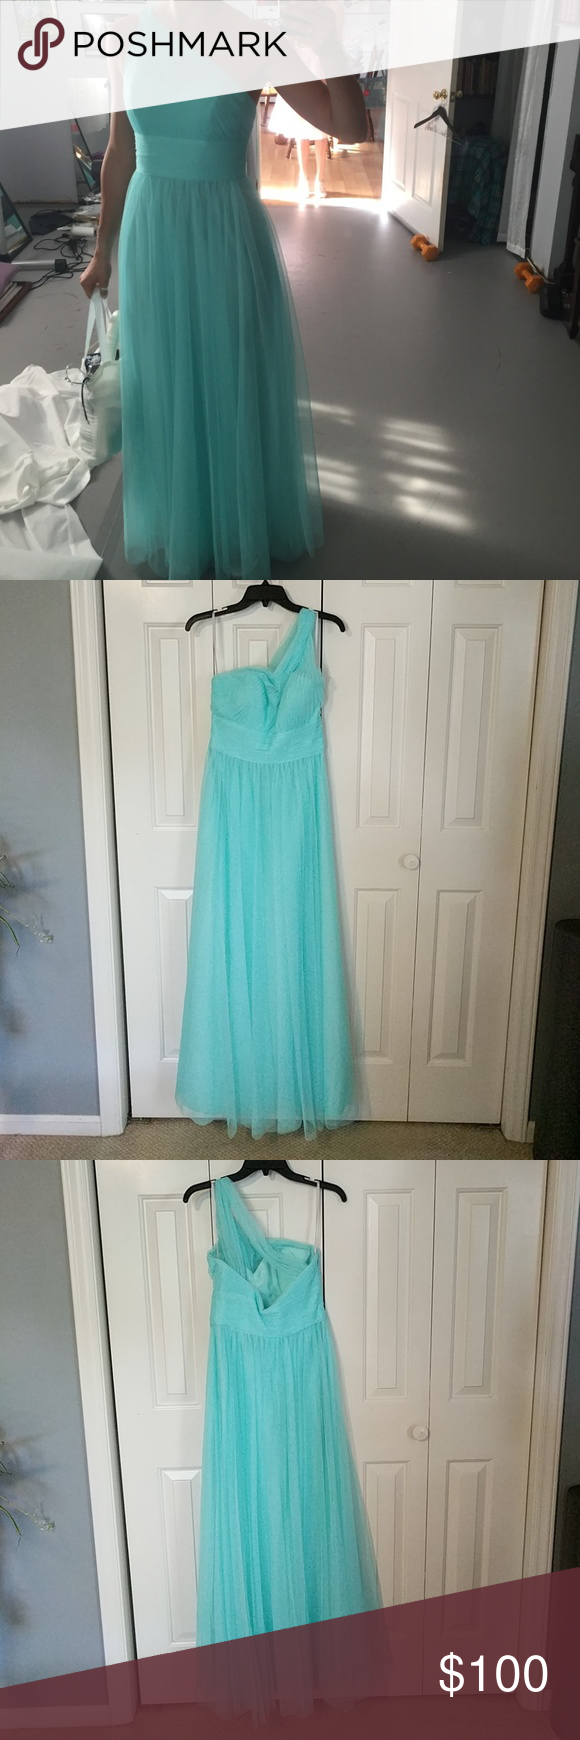 Watters bridesmaids dress style ocean colors bridesmaid